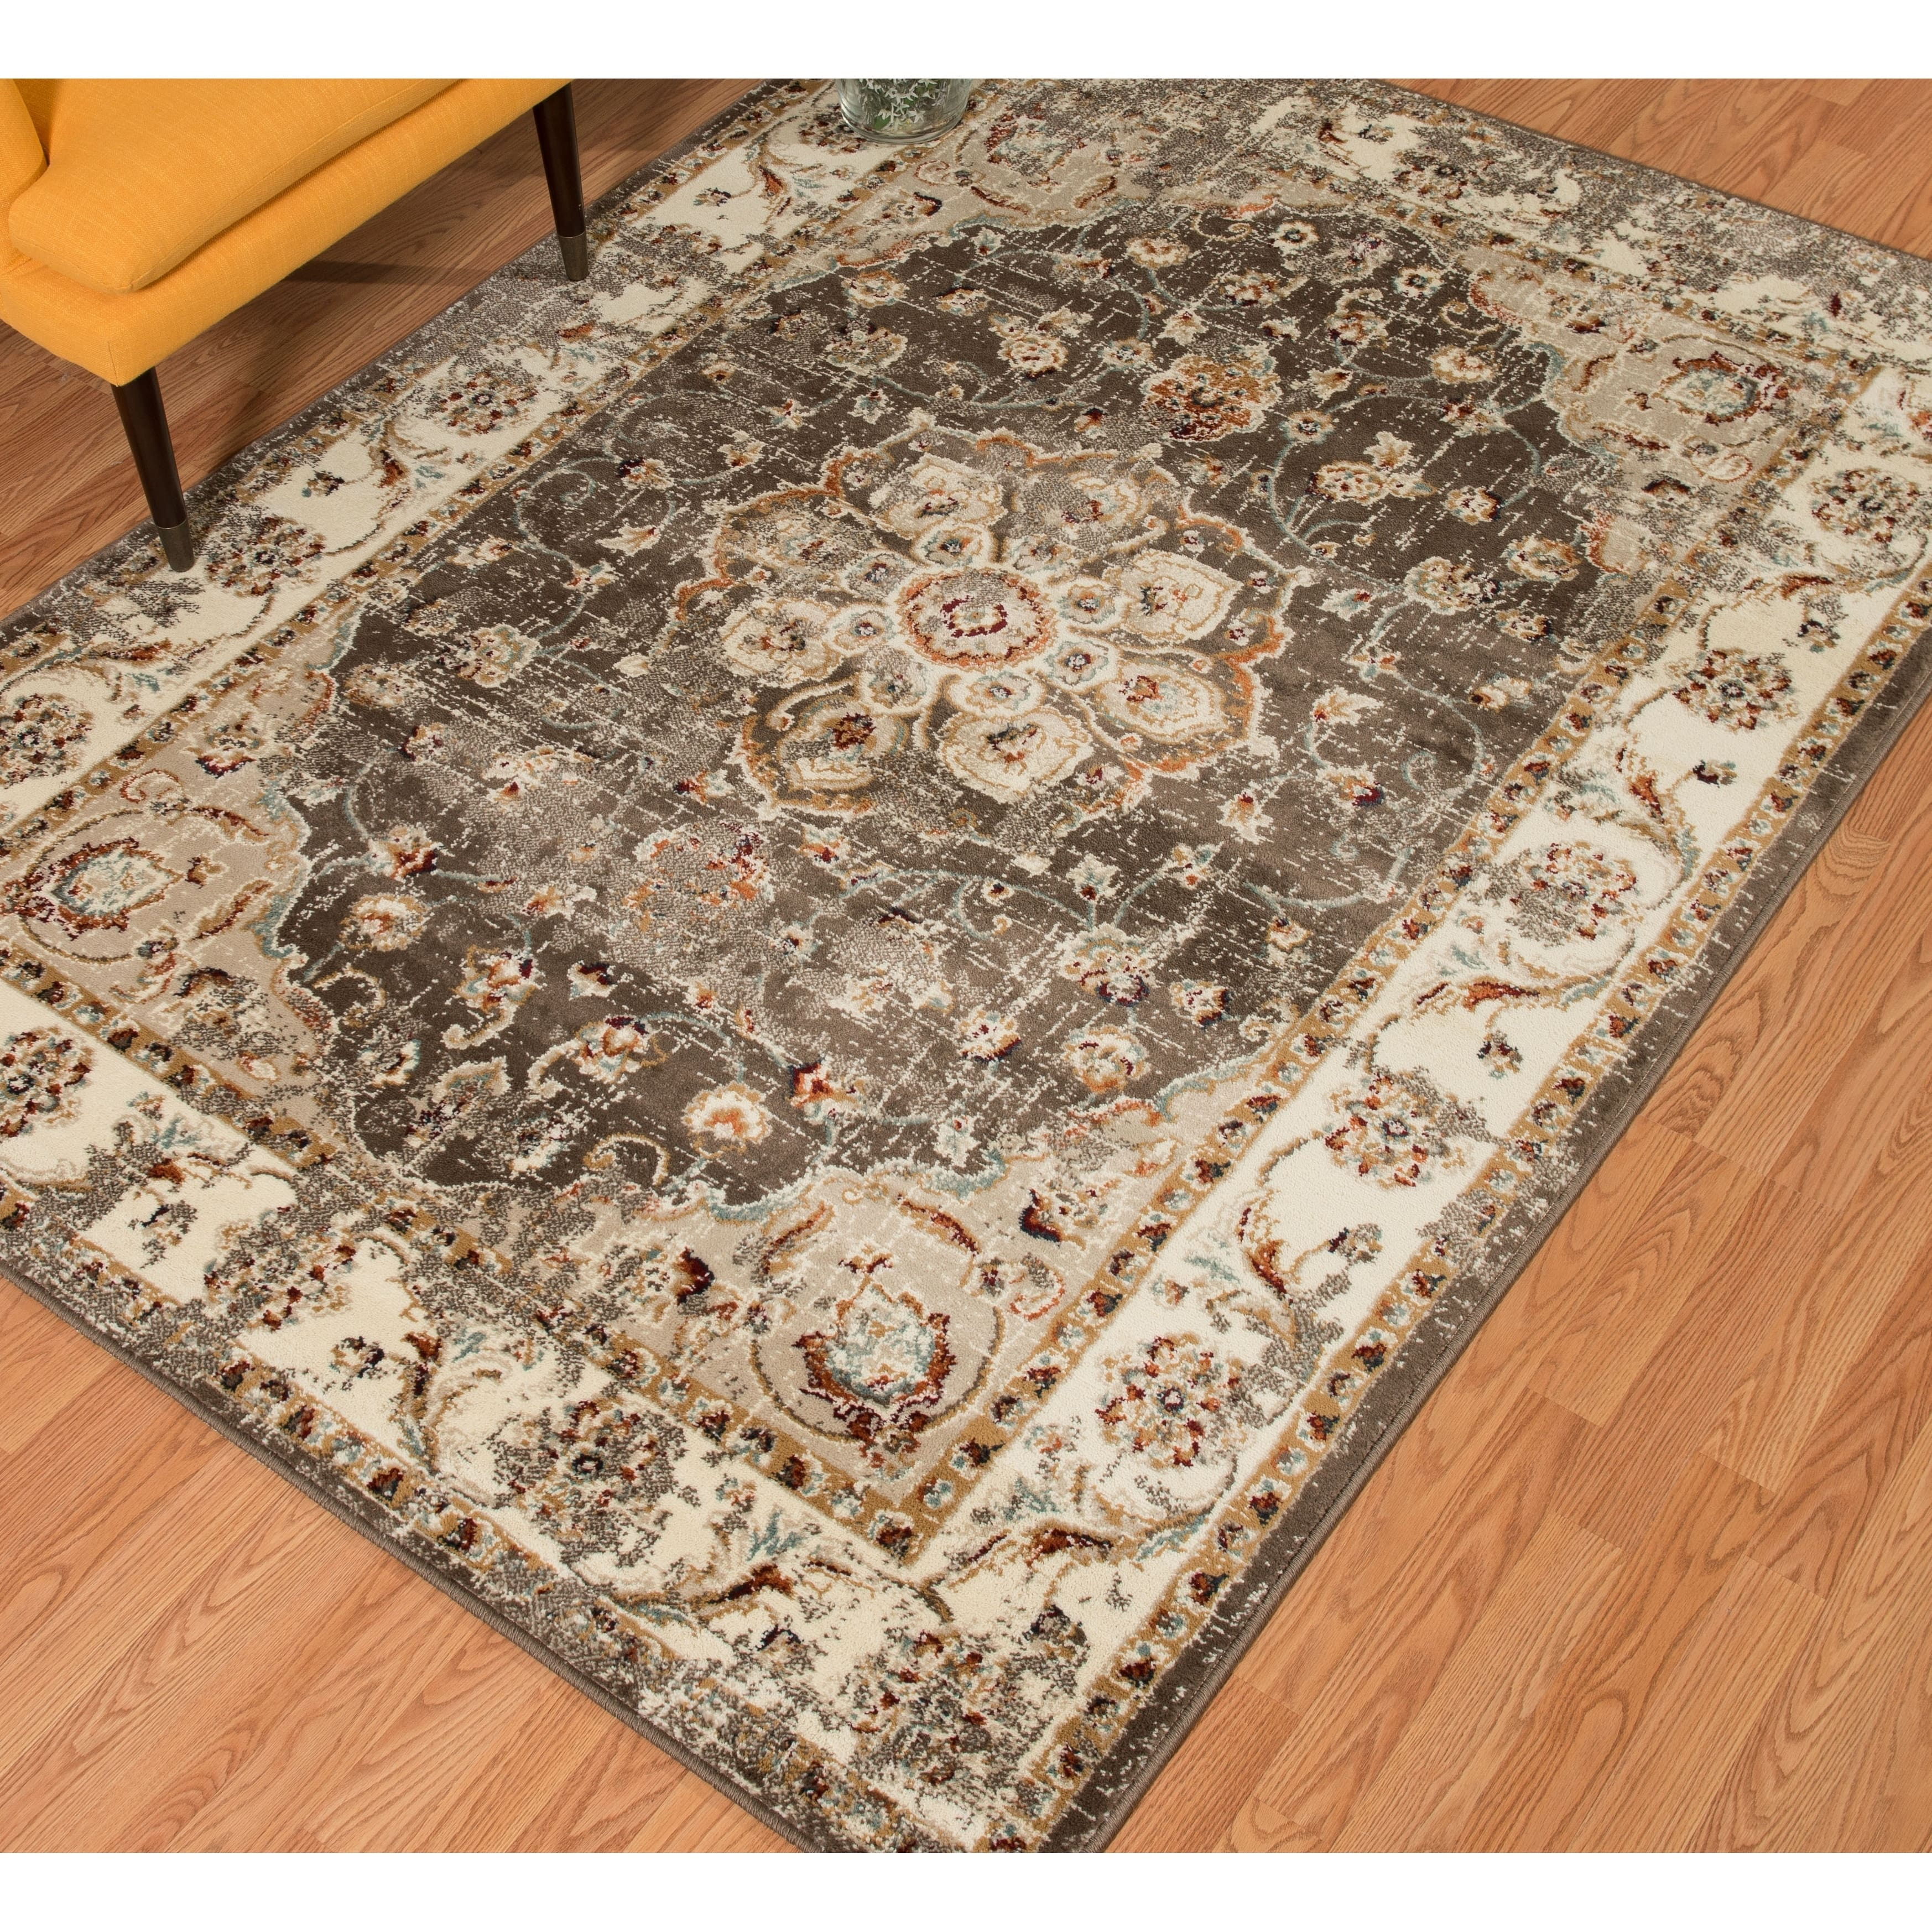 buy 6 x 9 area rugs online at overstock our best rugs 13096 | westfield home sphinx rio taupe area rug 53 x 72 cd17b6fe 1ab3 4175 89e9 ce75f432ed4b impolicy medium